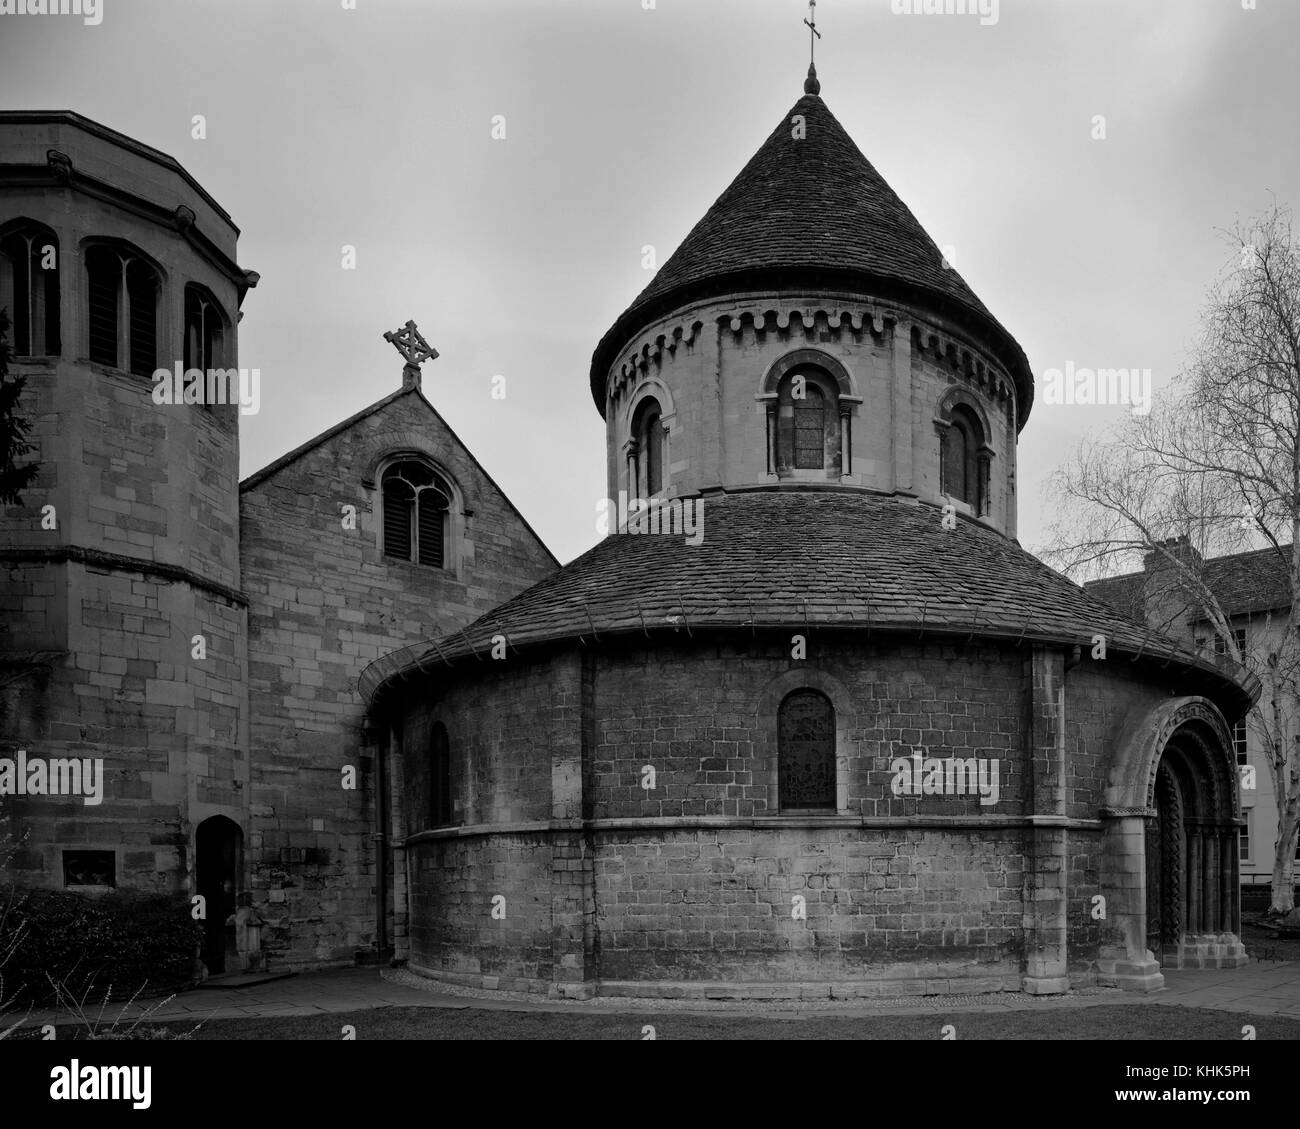 The Round Church of St Andrew the Great Cambridge - Stock Image